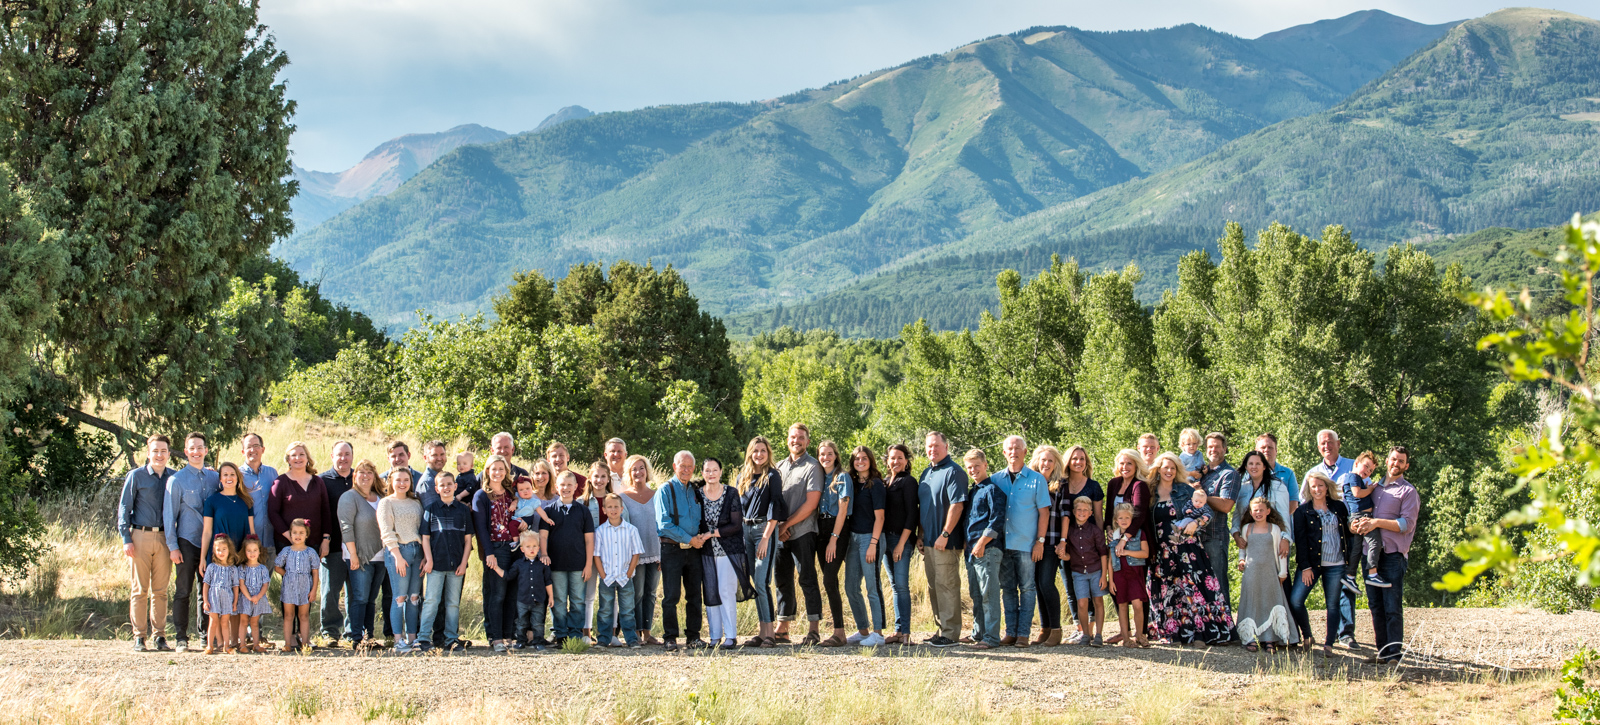 professional outdoor portraits for large families in Durango Colorado by Allison Ragsdale Photography